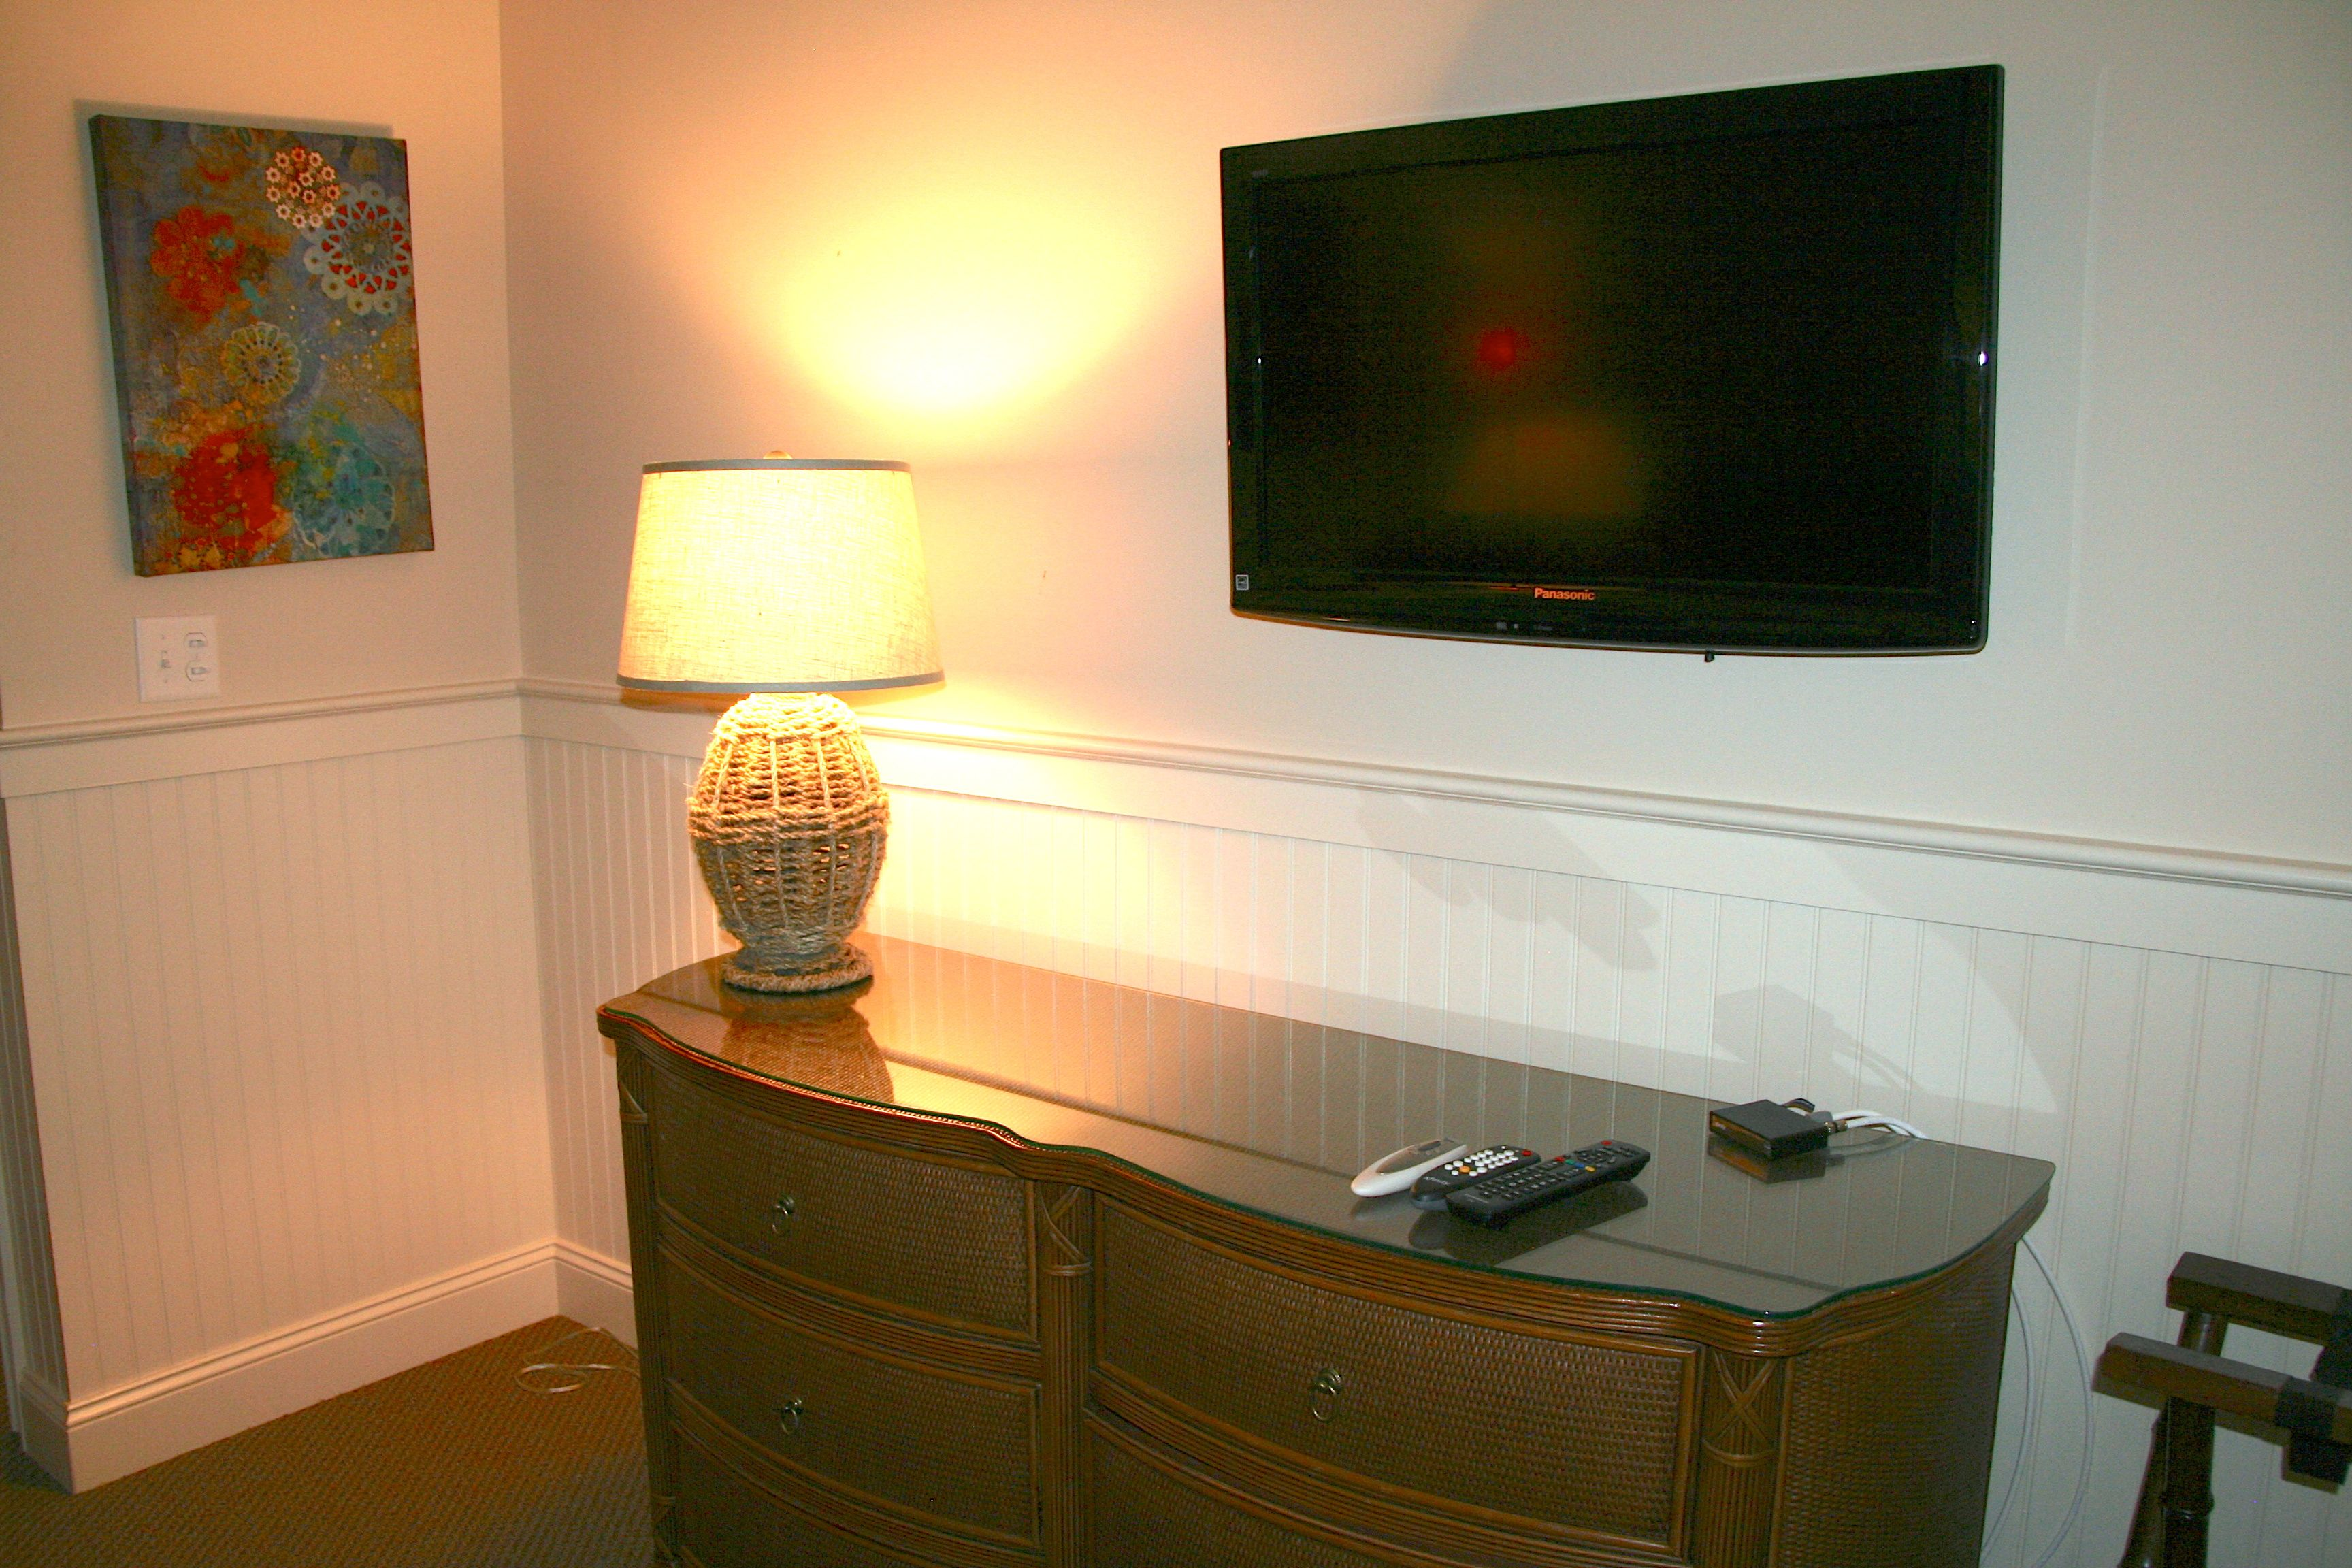 The room has a large HDTV mounted on the wall.